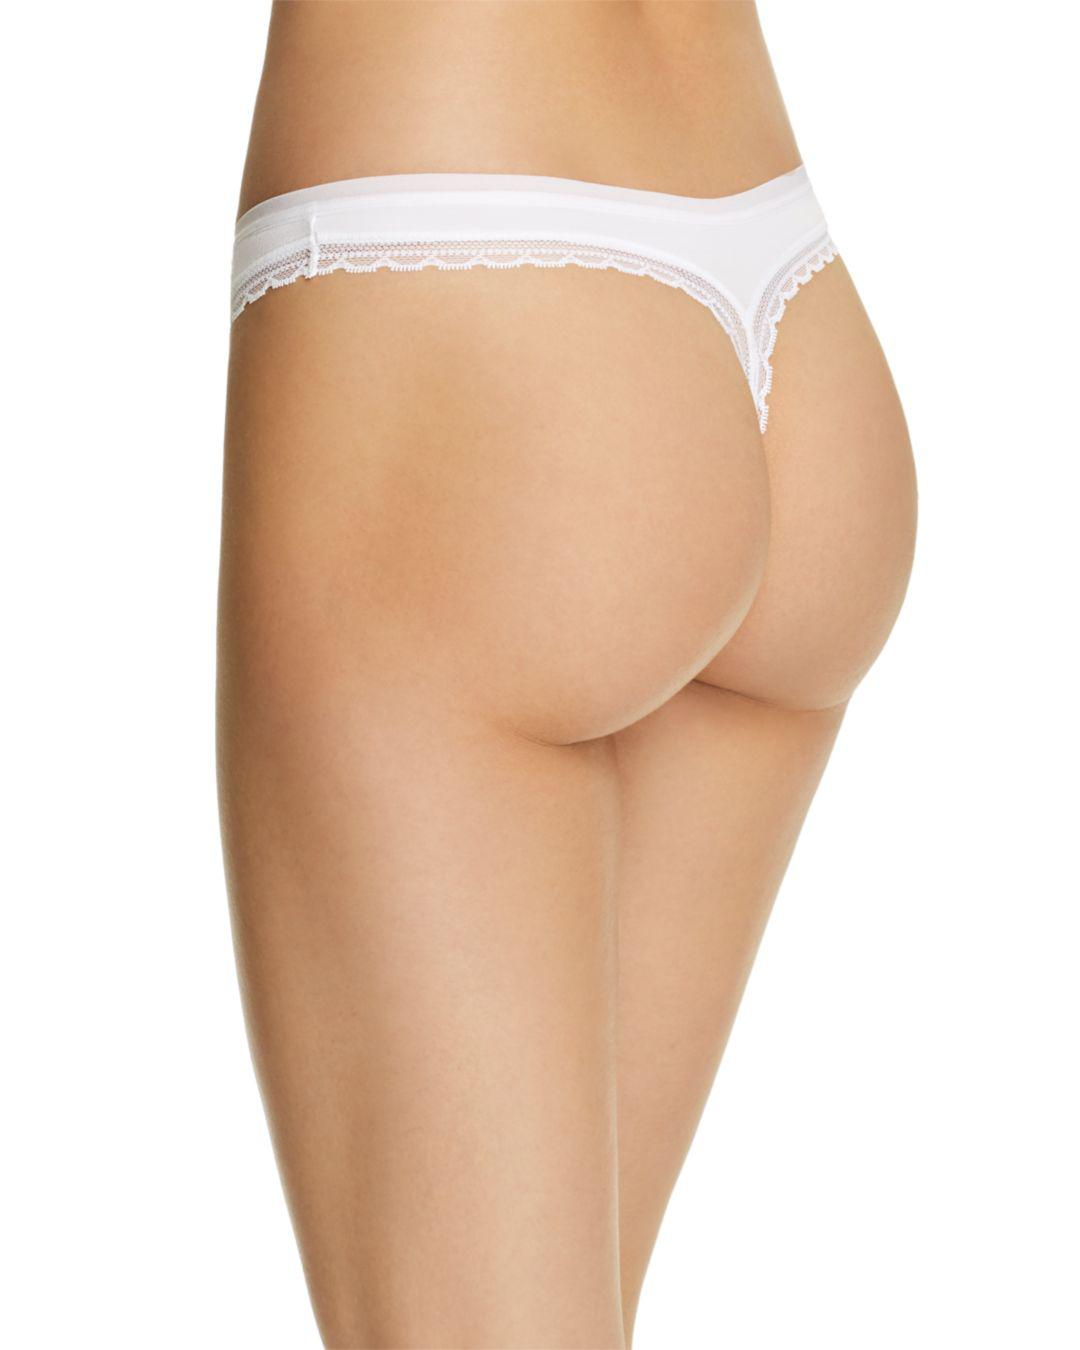 d5a973283ae7 On Gossamer Cabana Cotton Hip G-string in White - Lyst